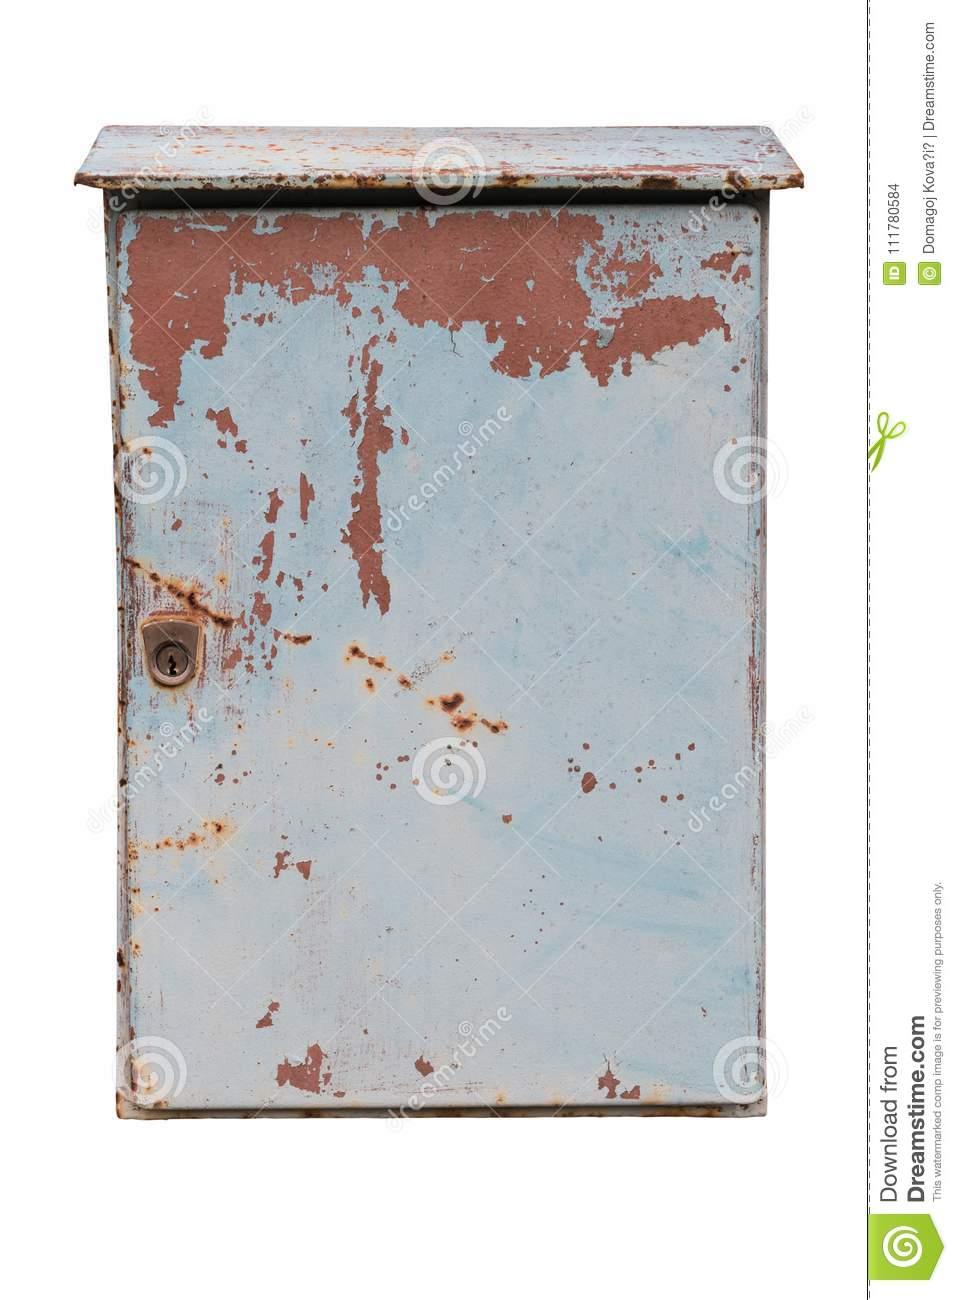 Old and rusty metal mailbox isolated on a white background. Path saved.